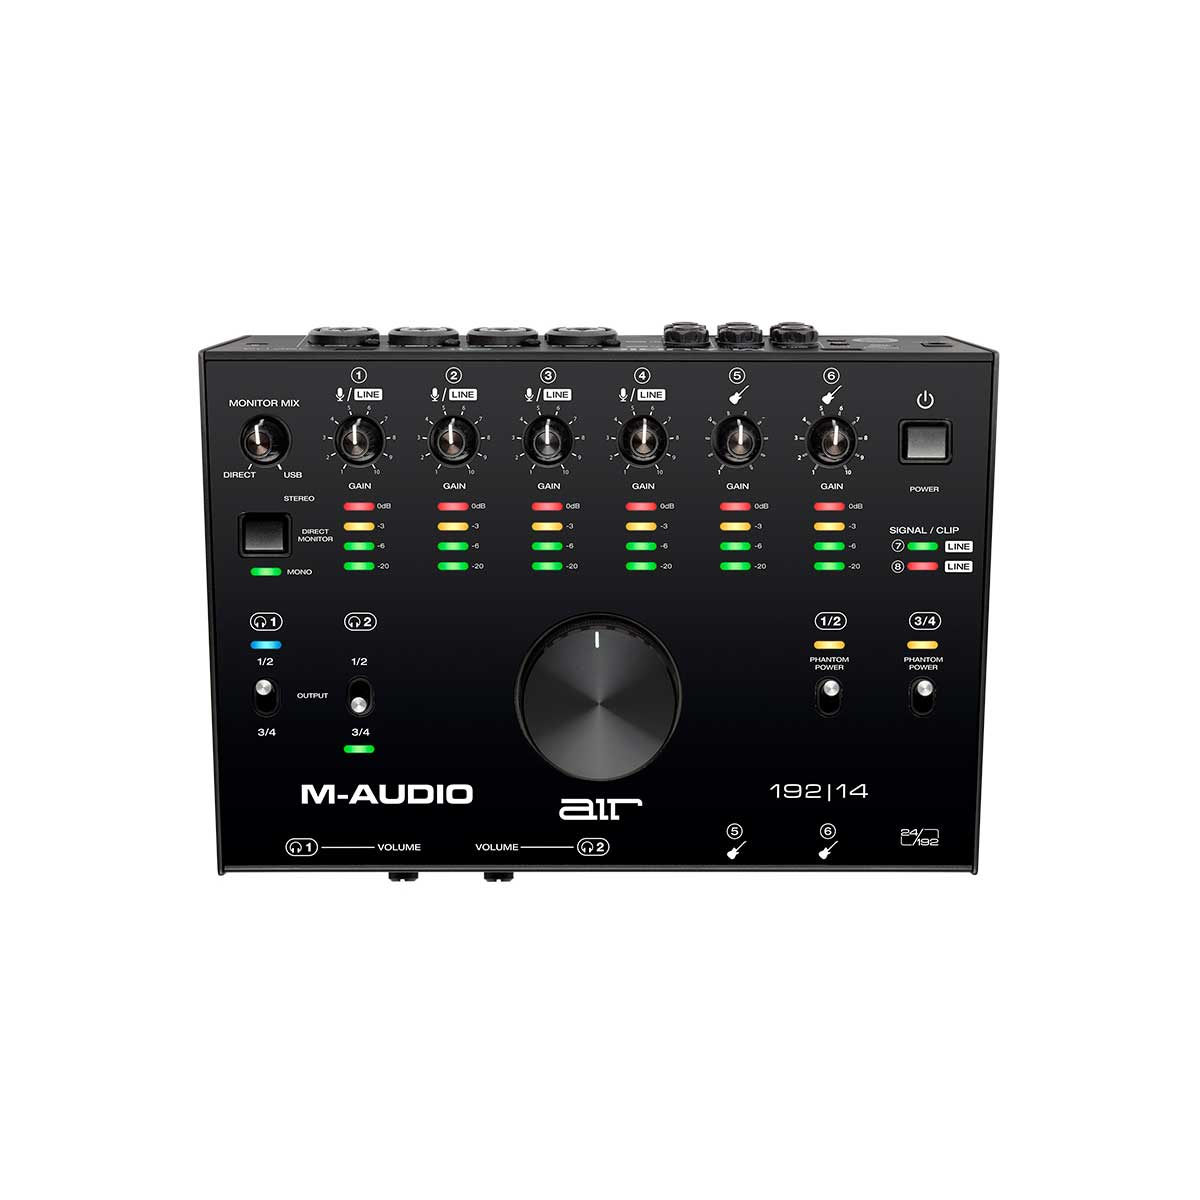 M-Audio AIR 192|14 8-In/4-Out 24/192 USB Audio Interface